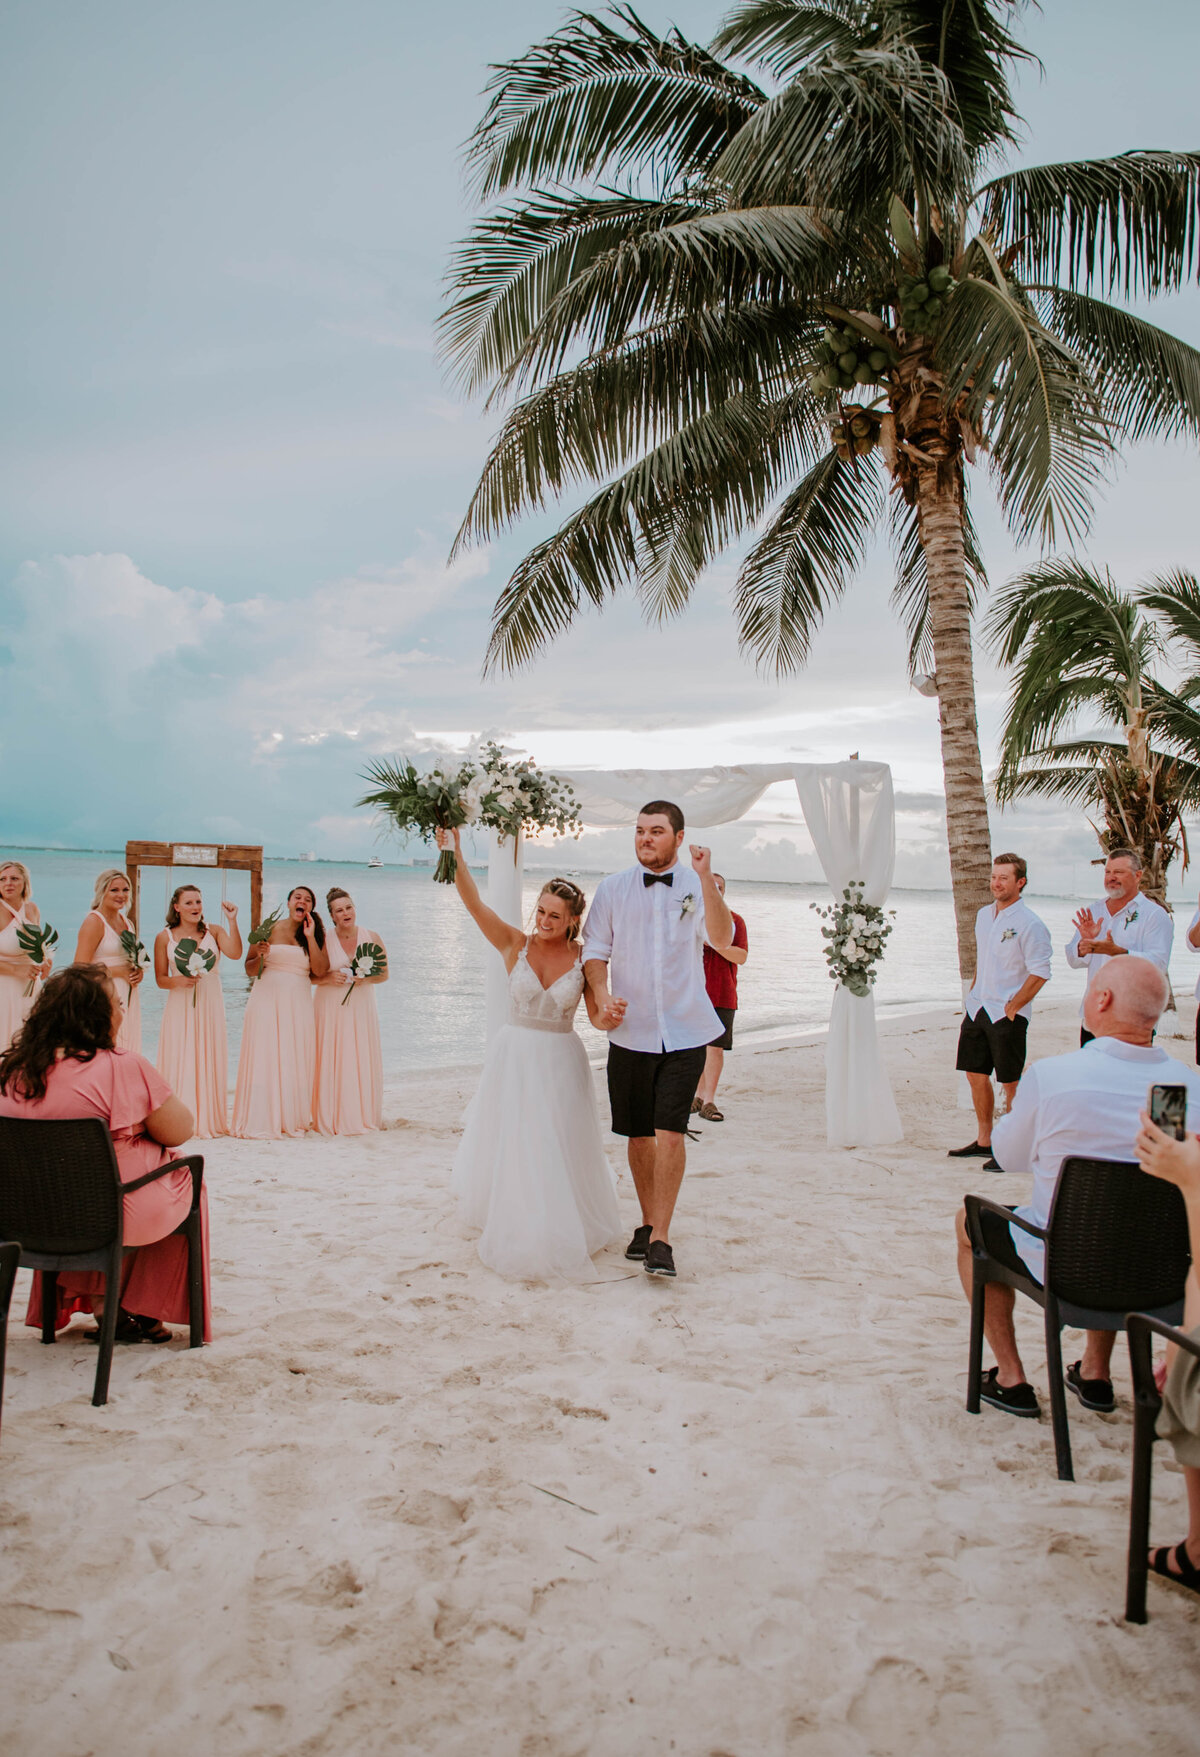 isla-mujeres-wedding-photographer-guthrie-zama-mexico-tulum-cancun-beach-destination-1270